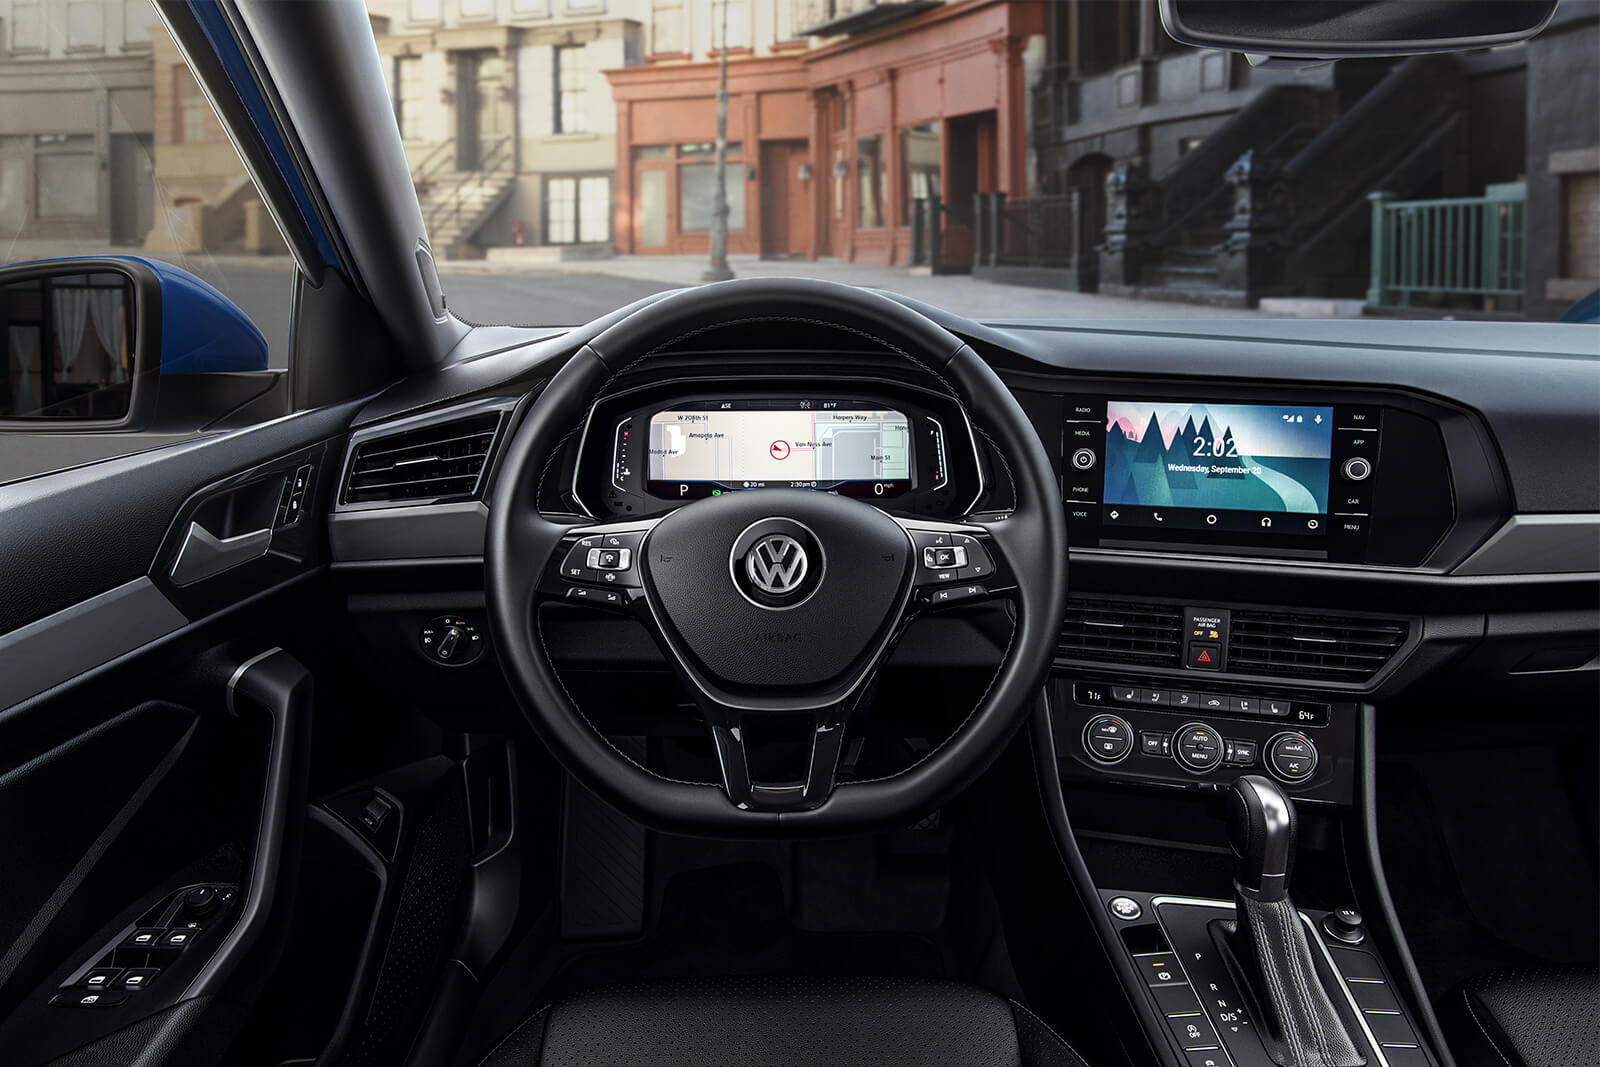 2019 Volkswagen Jetta SEL Premium Titan Black leather cockpit